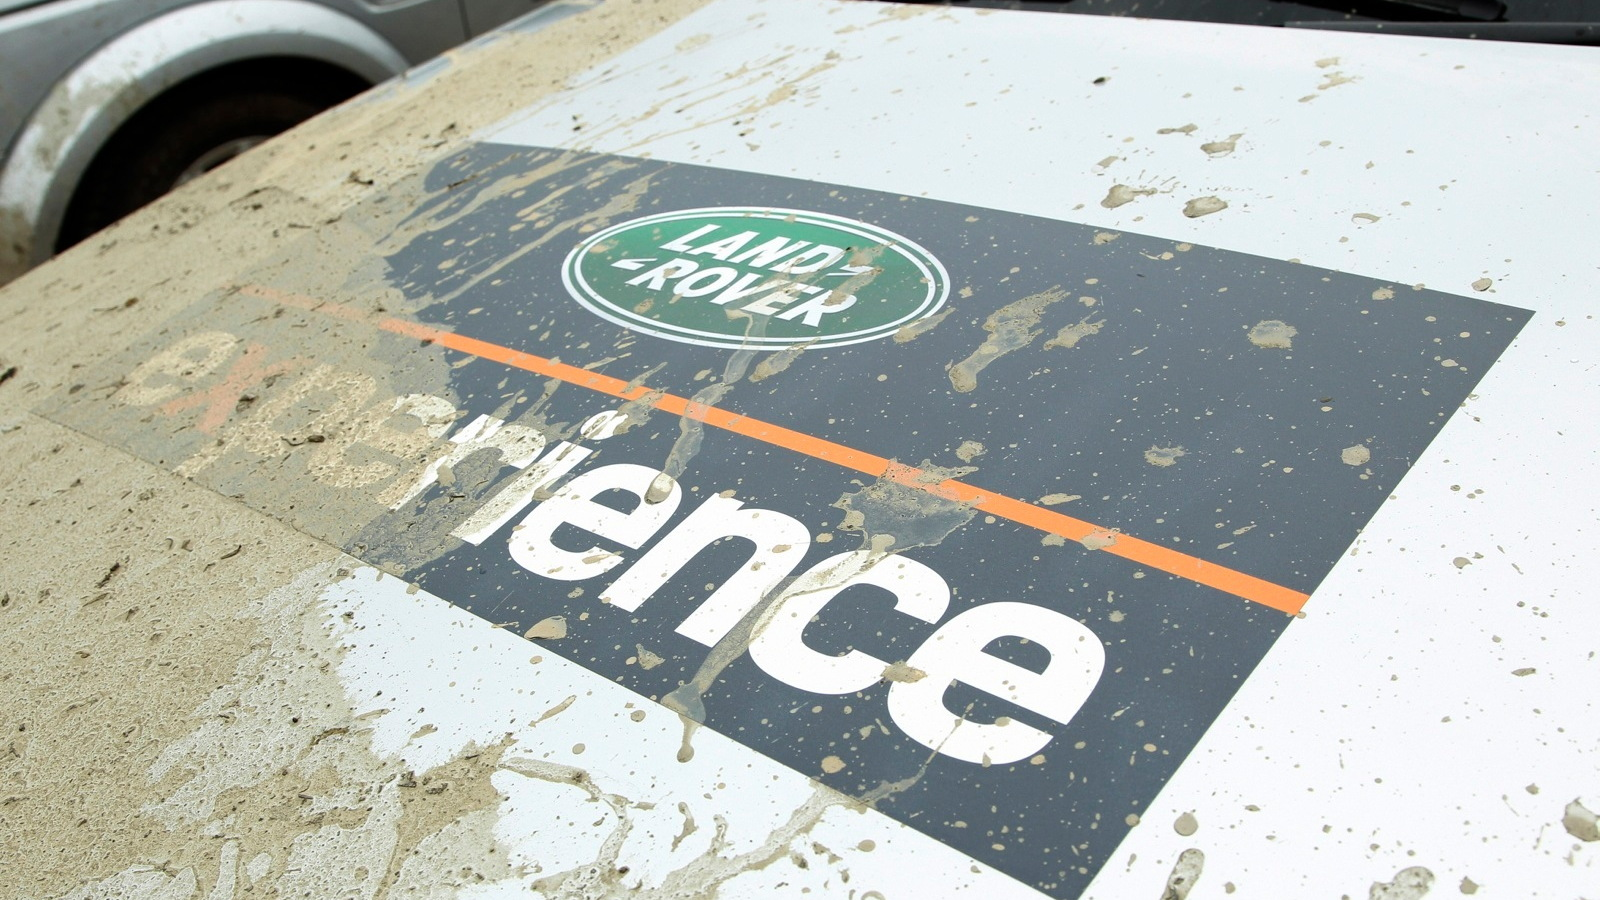 Land Rover Experience, Eastnor Castle, U.K.